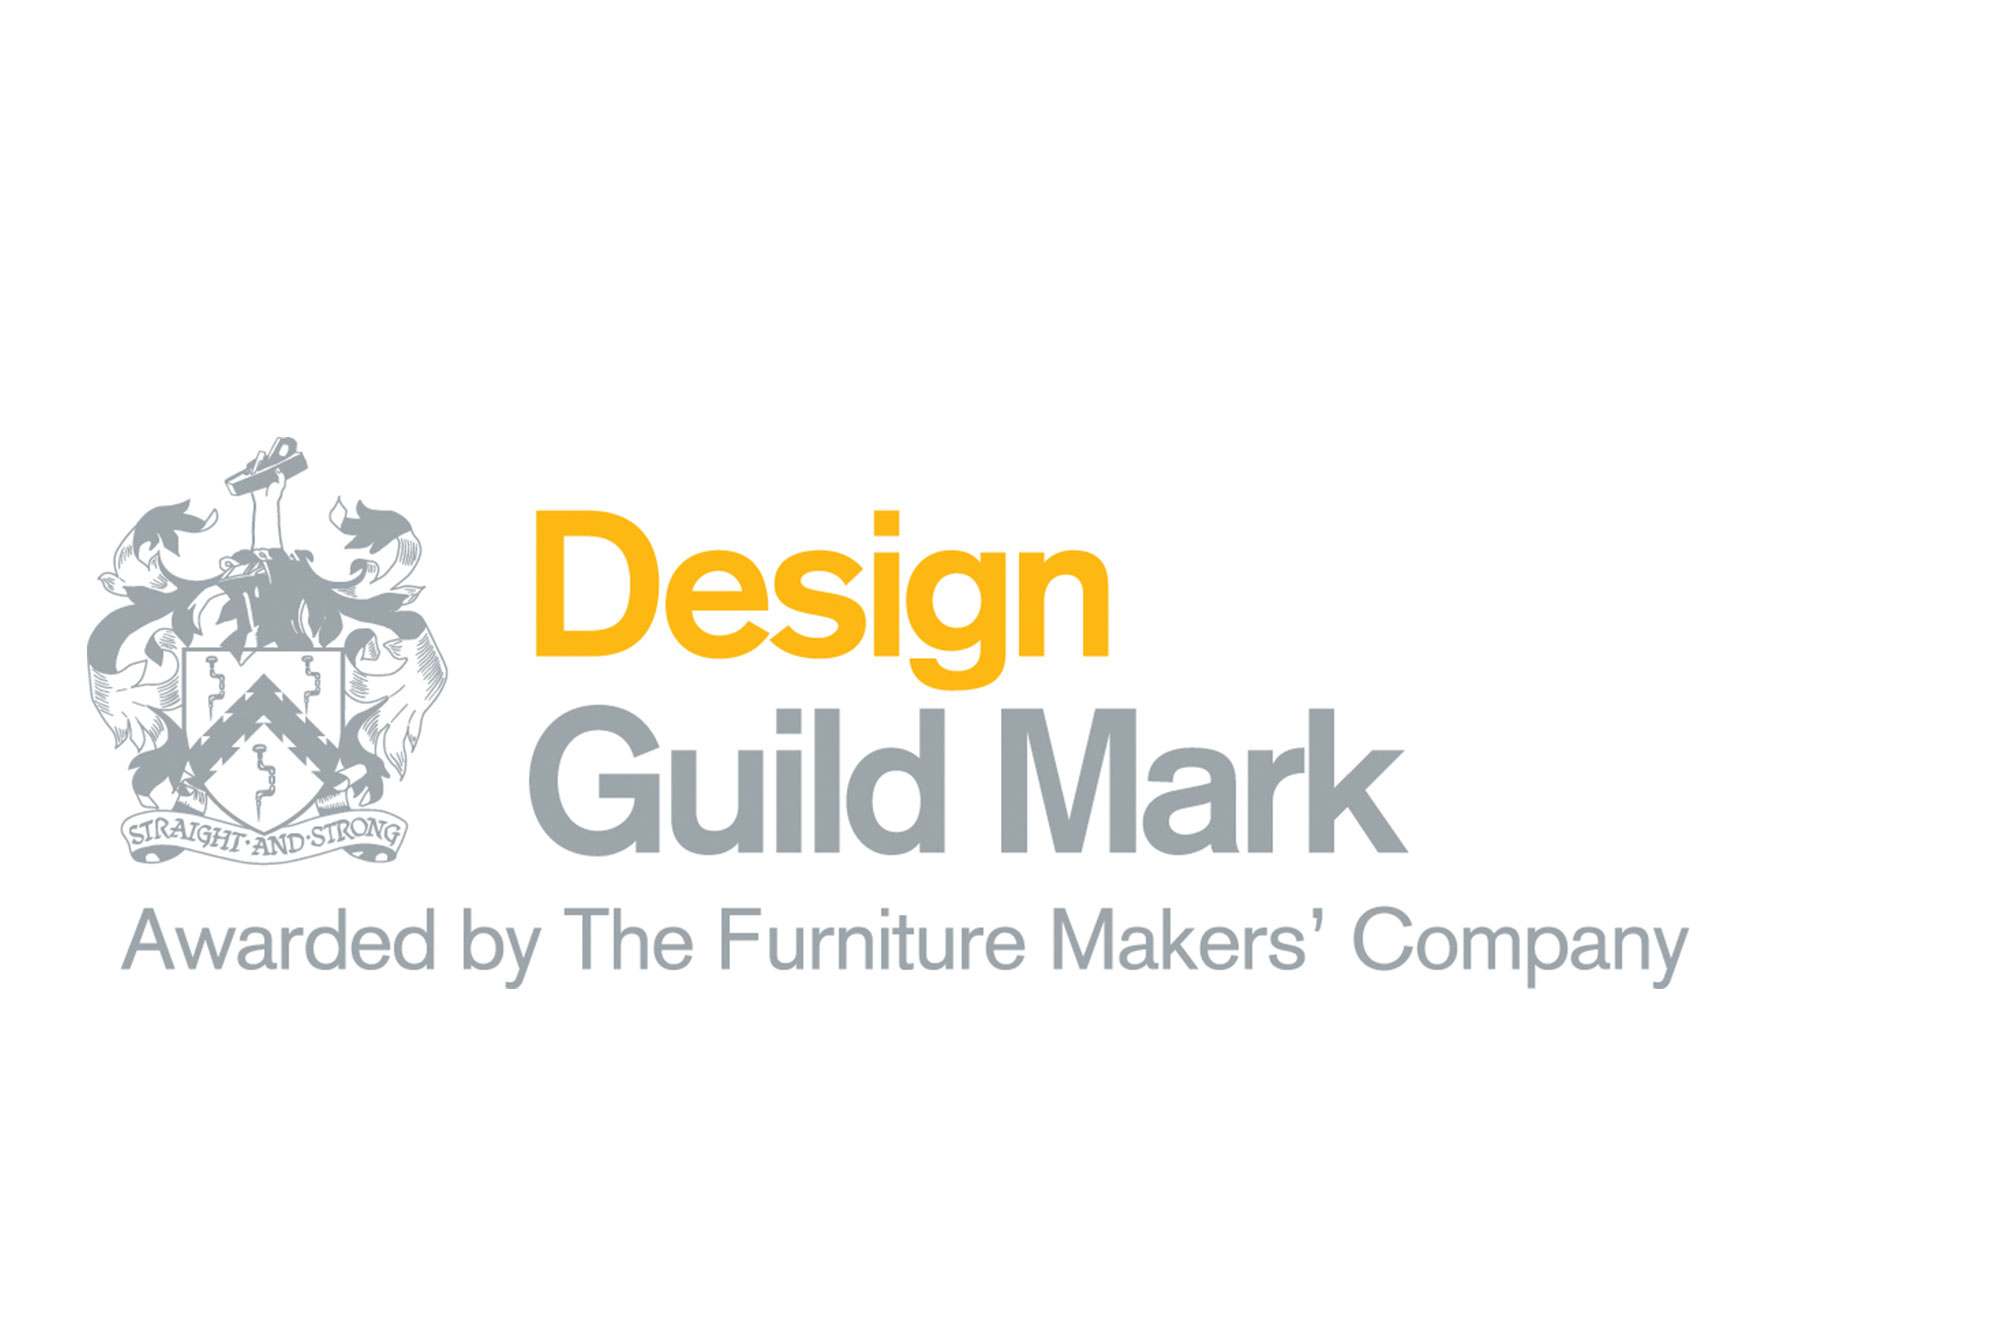 Proud to have been awarded a guild mark for excellence in design for manufacture.